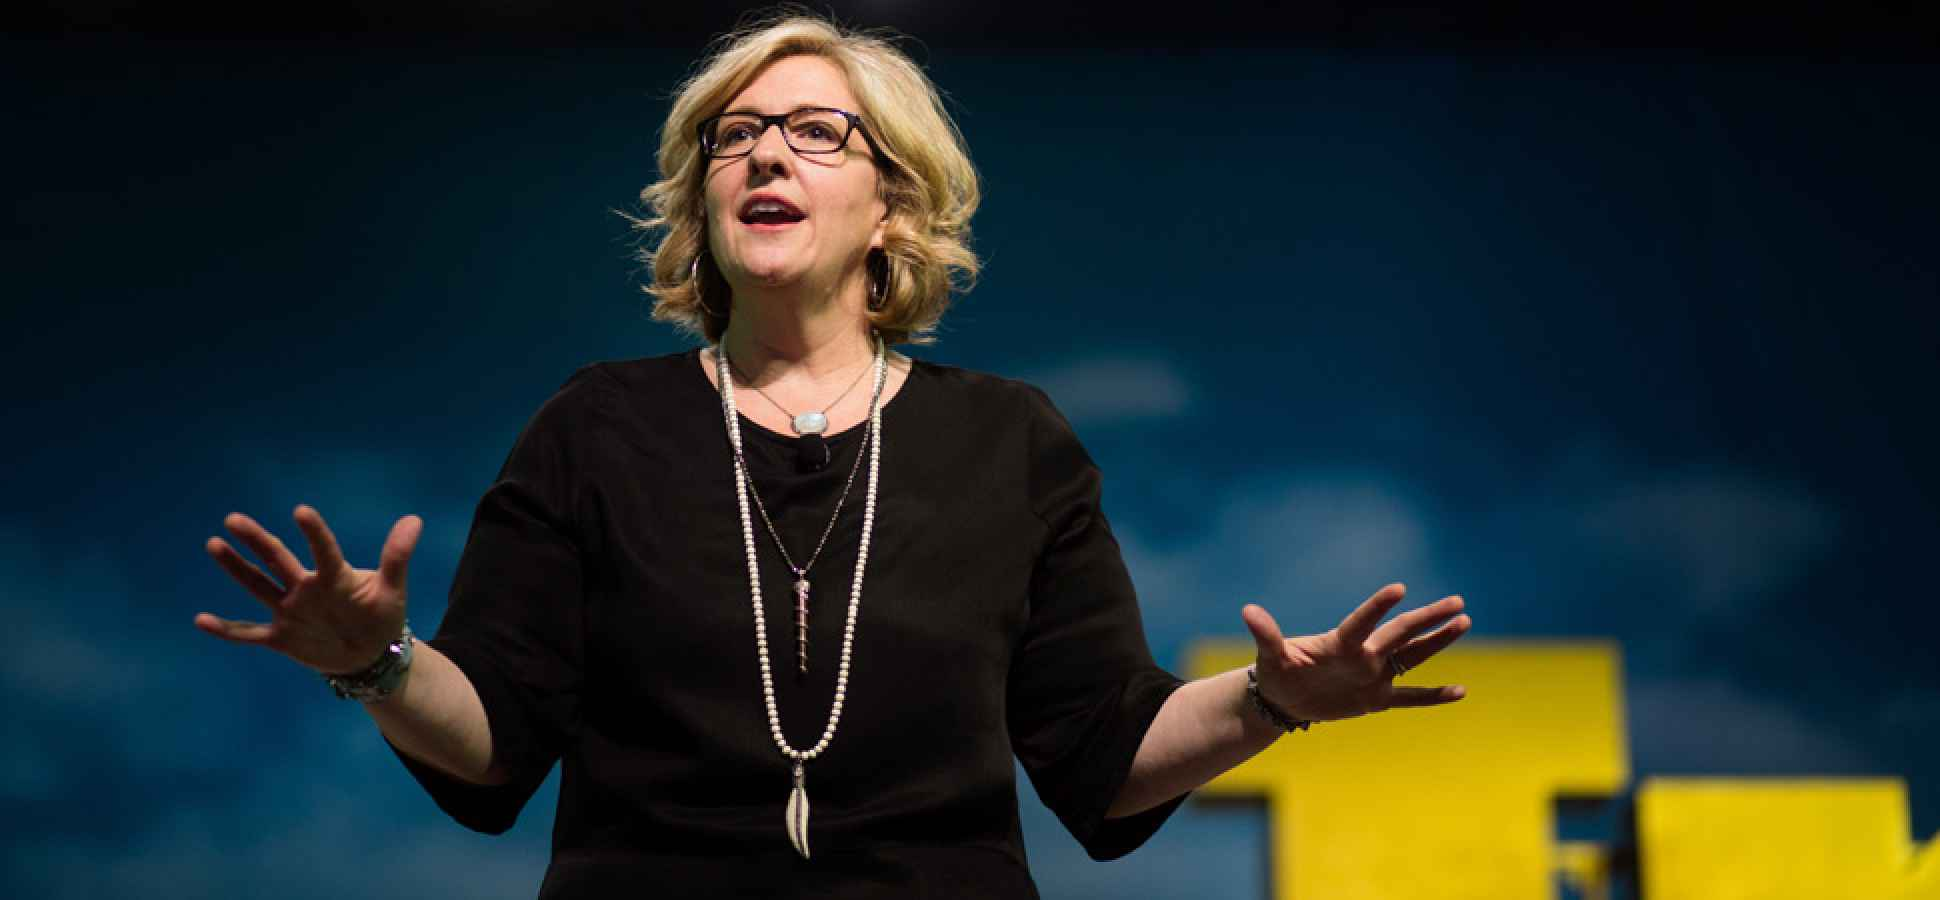 Brené Brown Asked Senior Leaders This Tough Question. The Answer May Sting a Bit